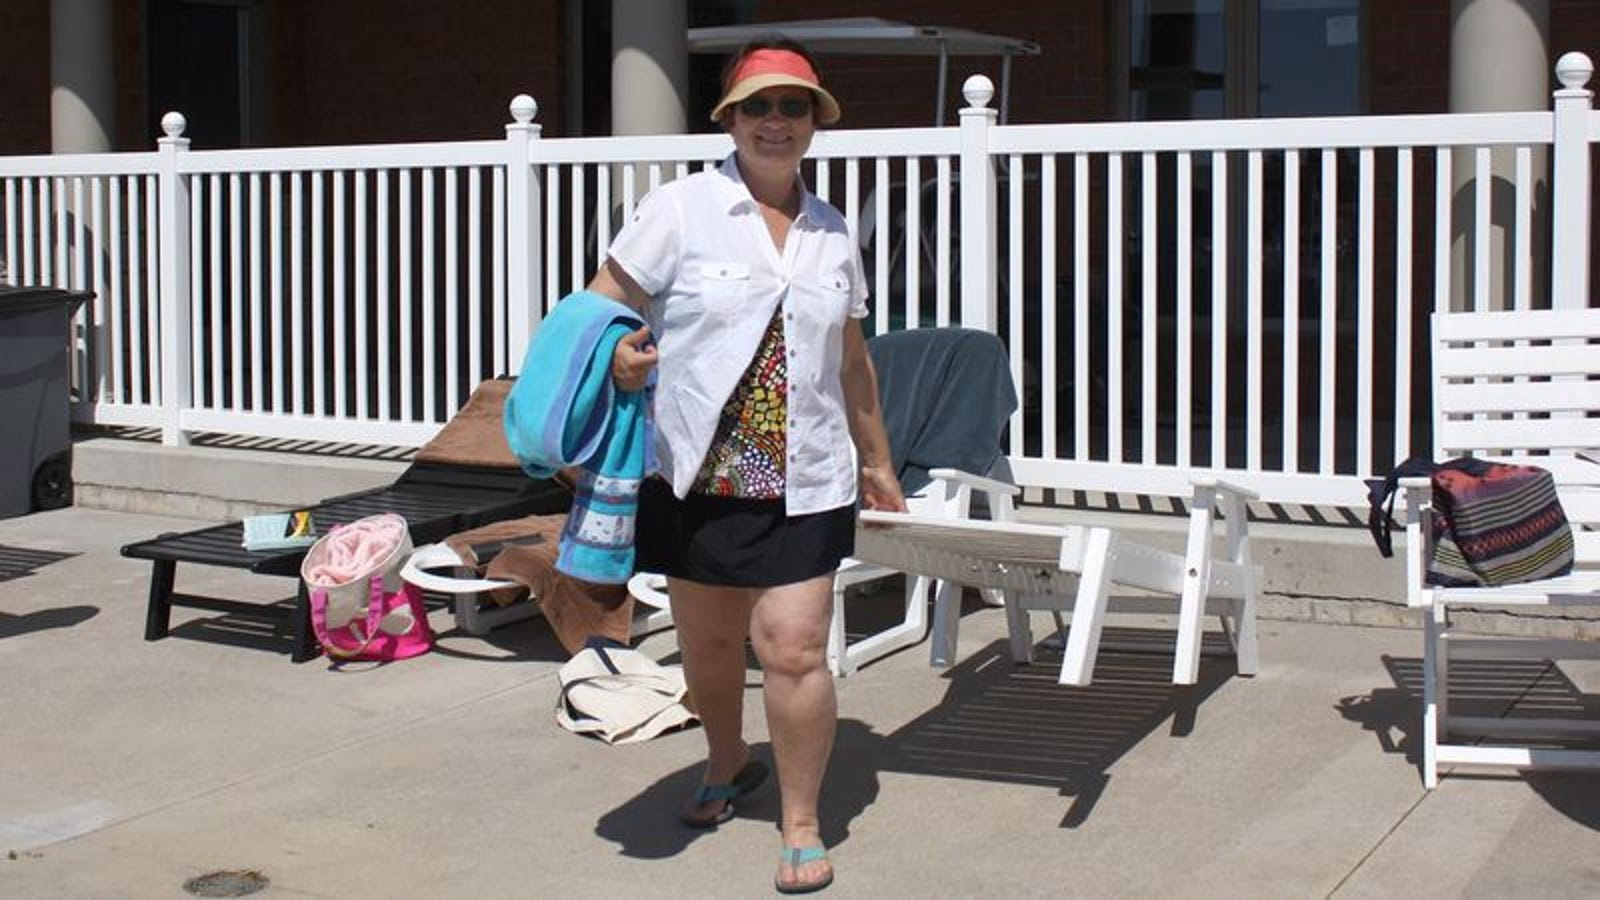 Mom Triumphantly Drags Hotel Pool Lounge Chair Back To Family Like Fresh Kill